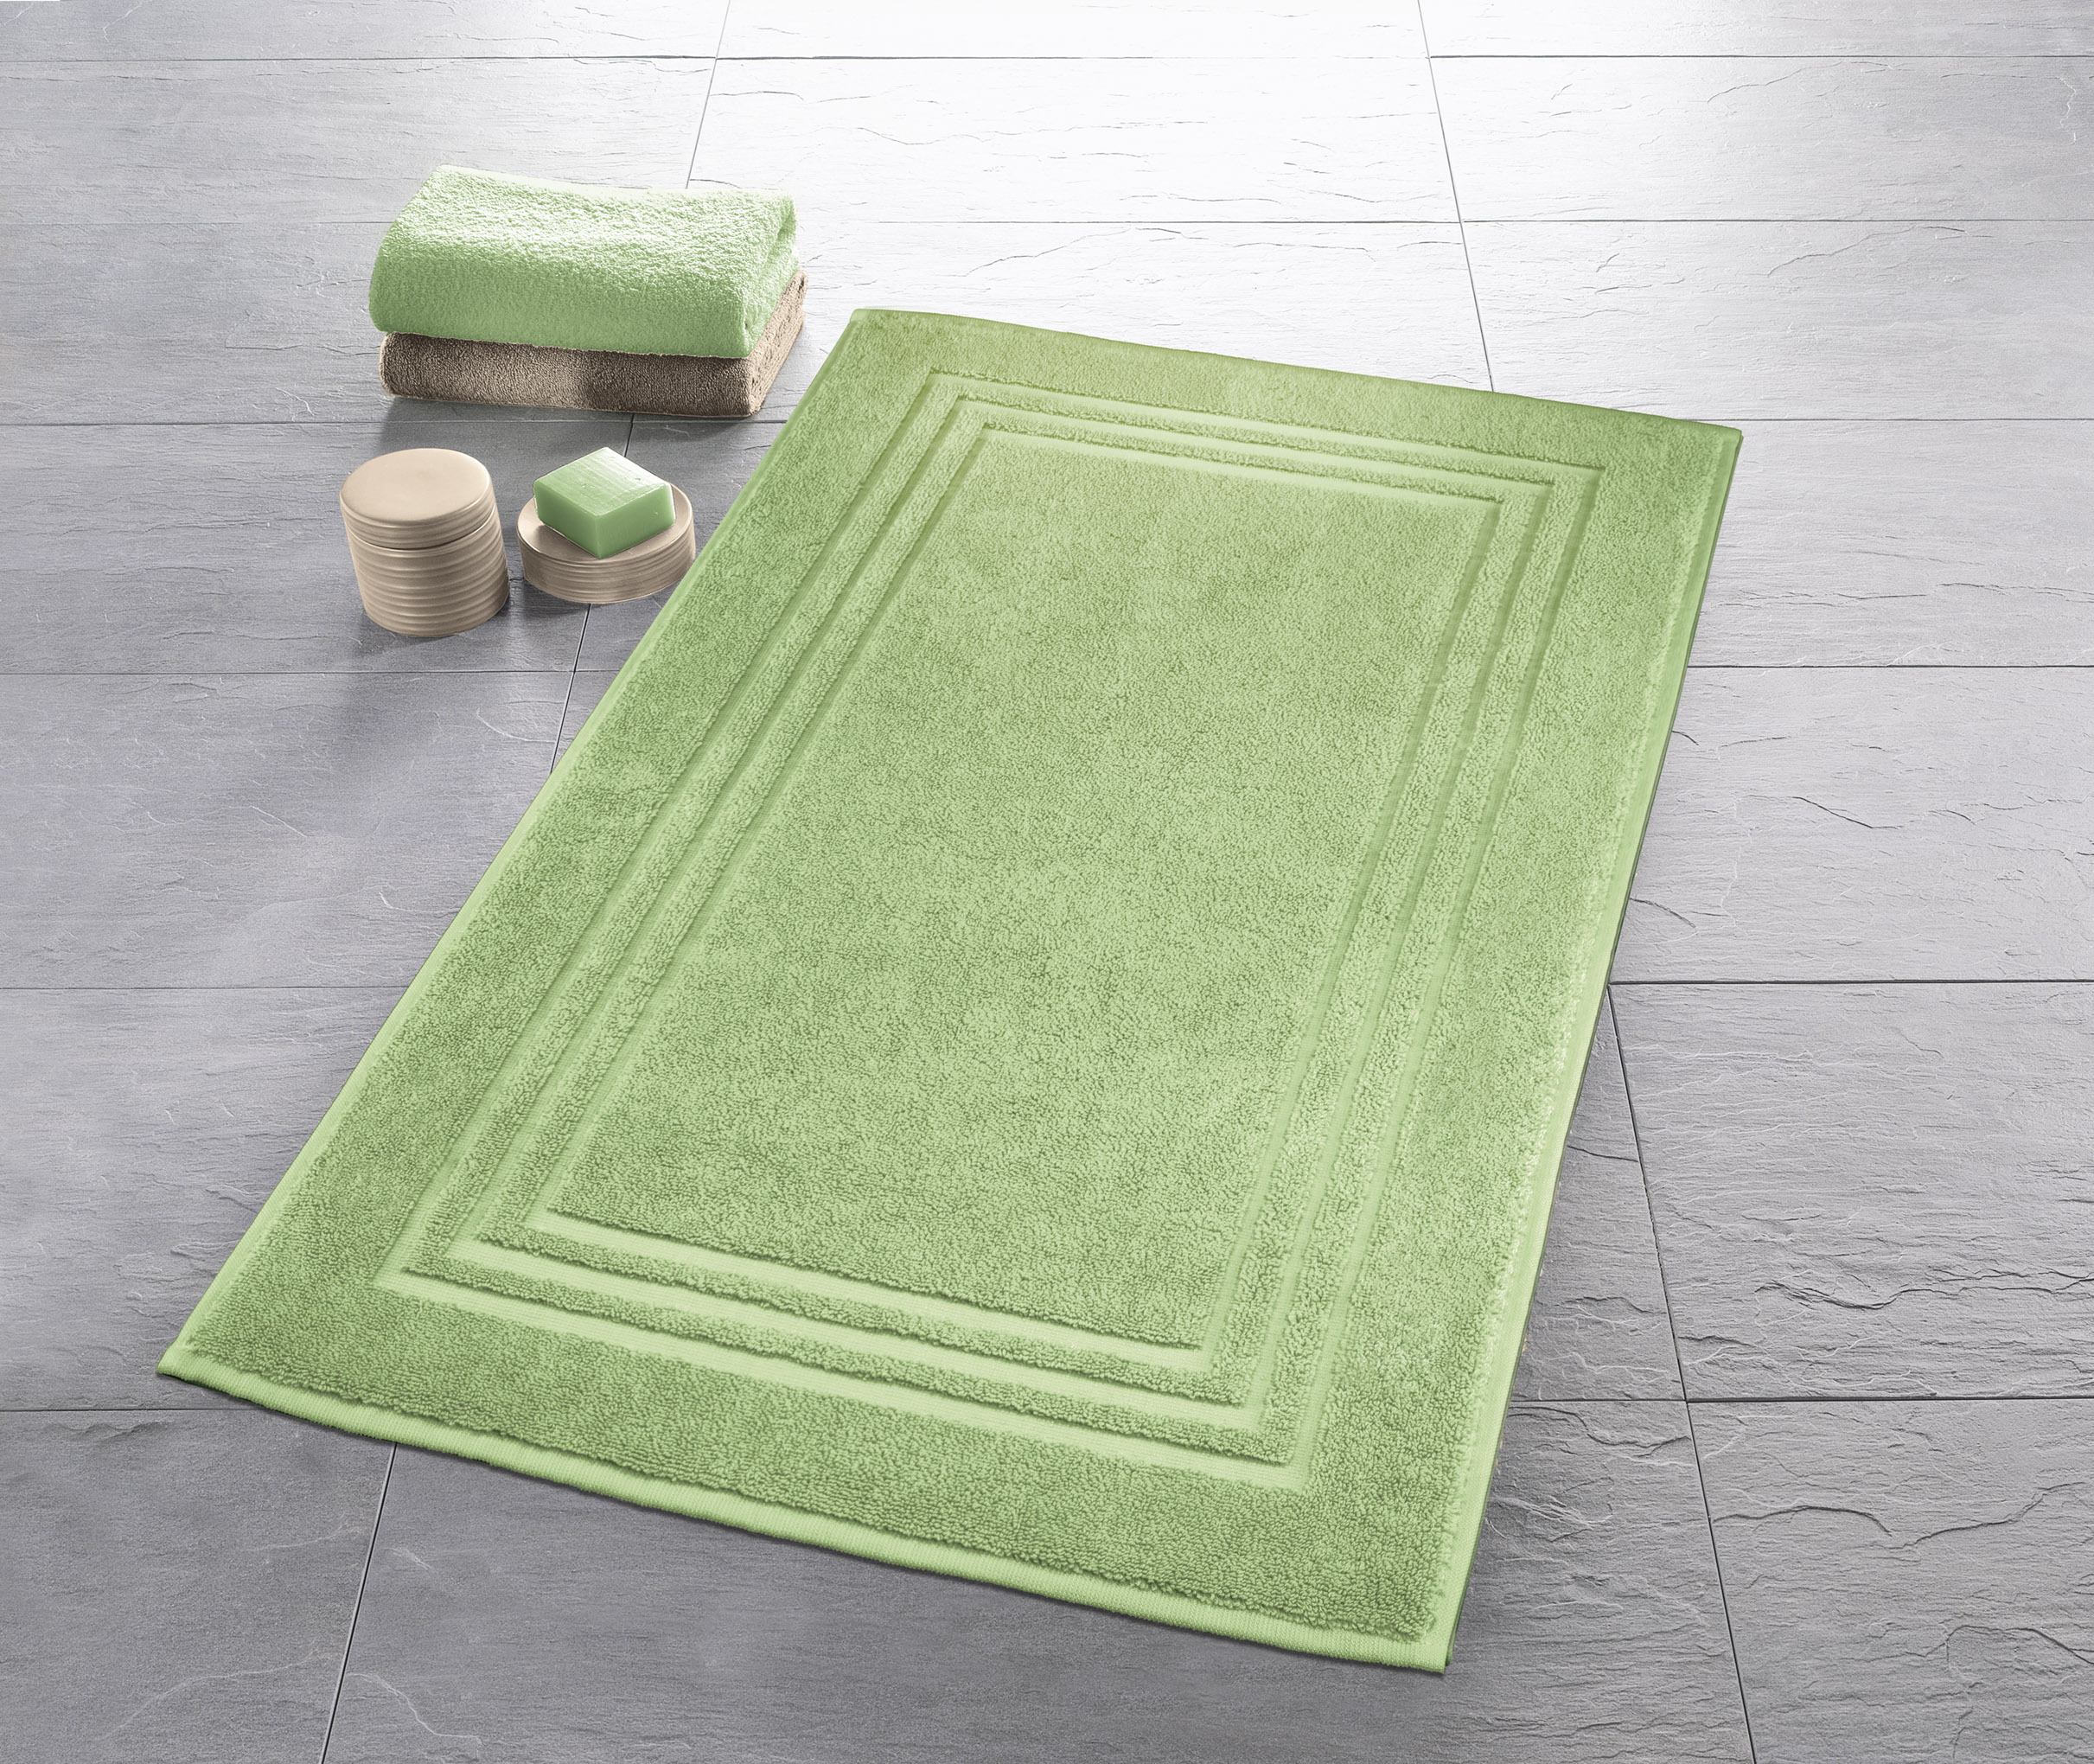 TERRY CLOTH RUG